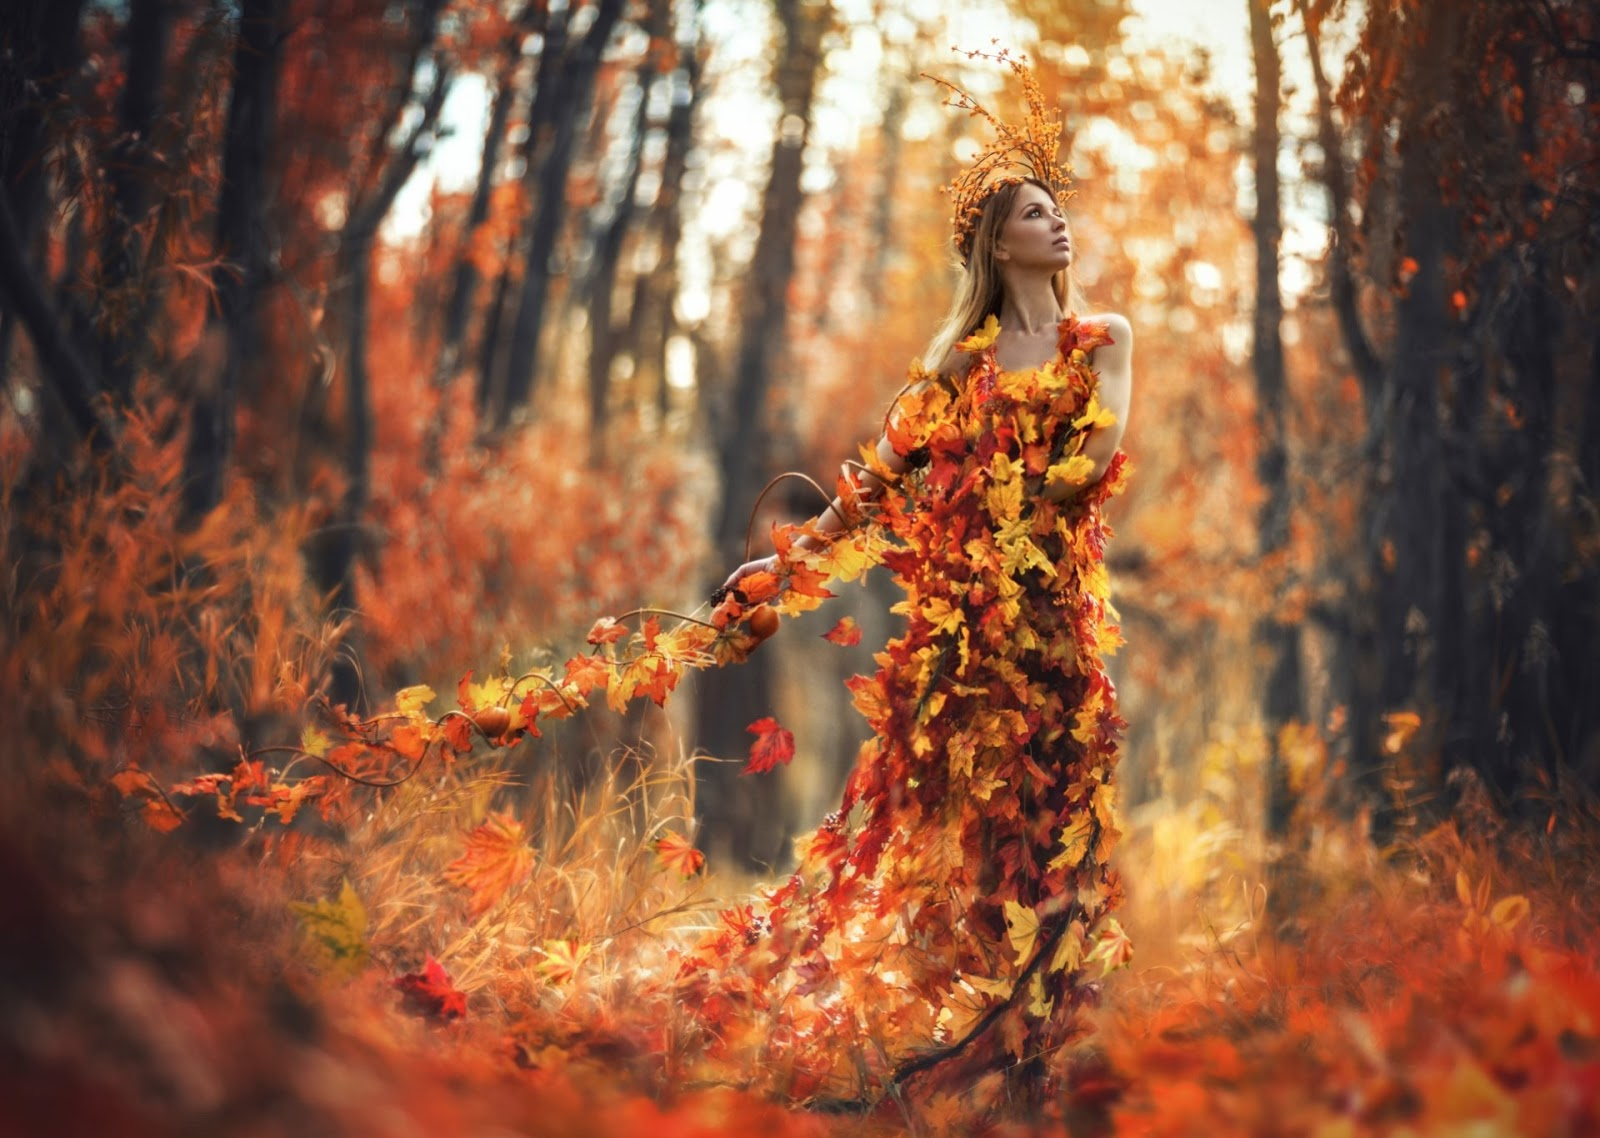 autumn spell, lady autumn, girl autumn, leaves, art